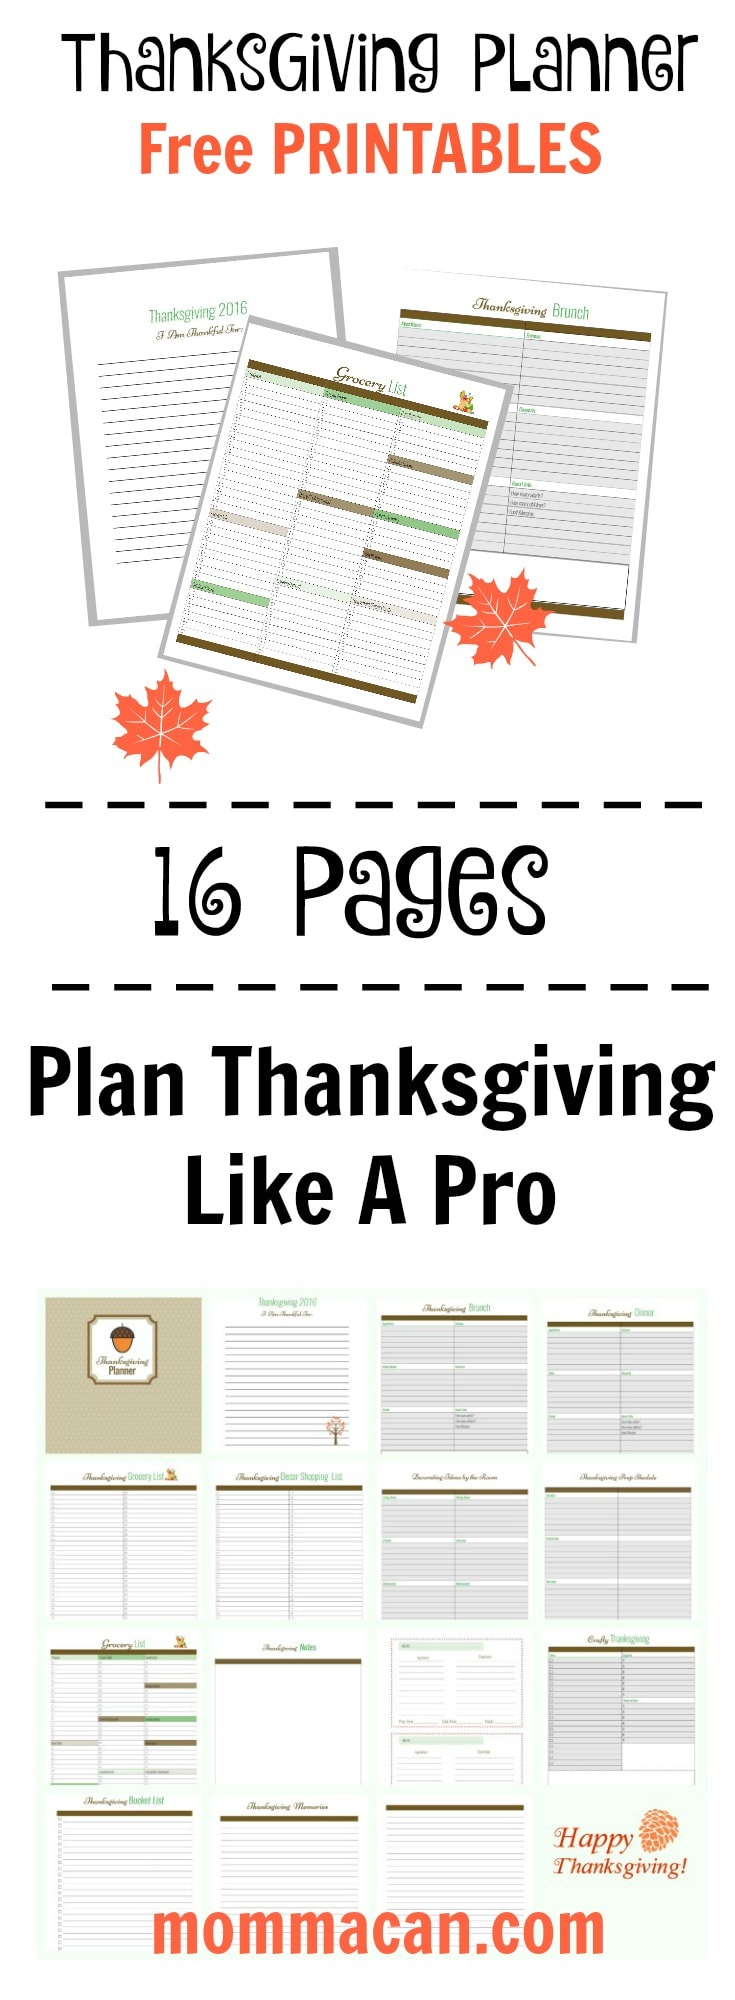 Plan Thanksgiving Like A Pro with thee free printable plannning pages from mommacan.com